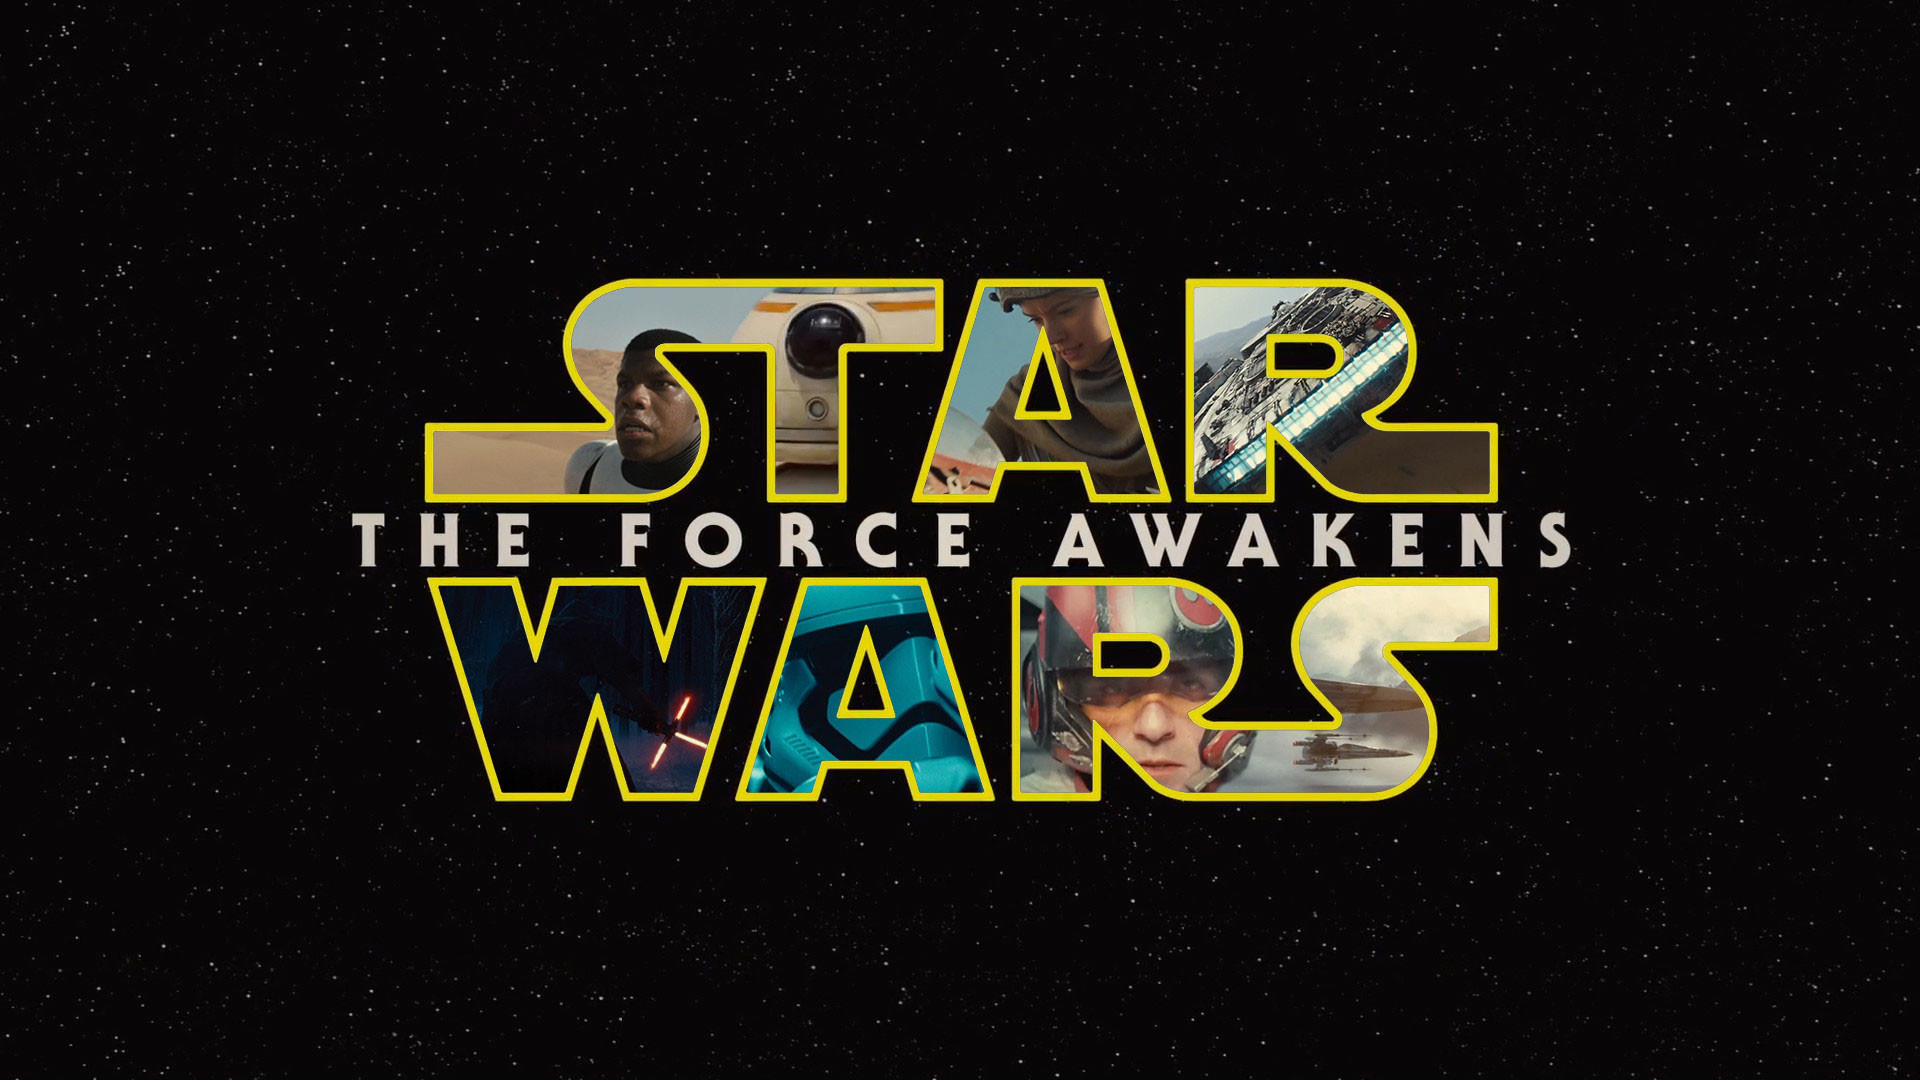 Get ready for the Force Awakens with these 26 Star Wars.